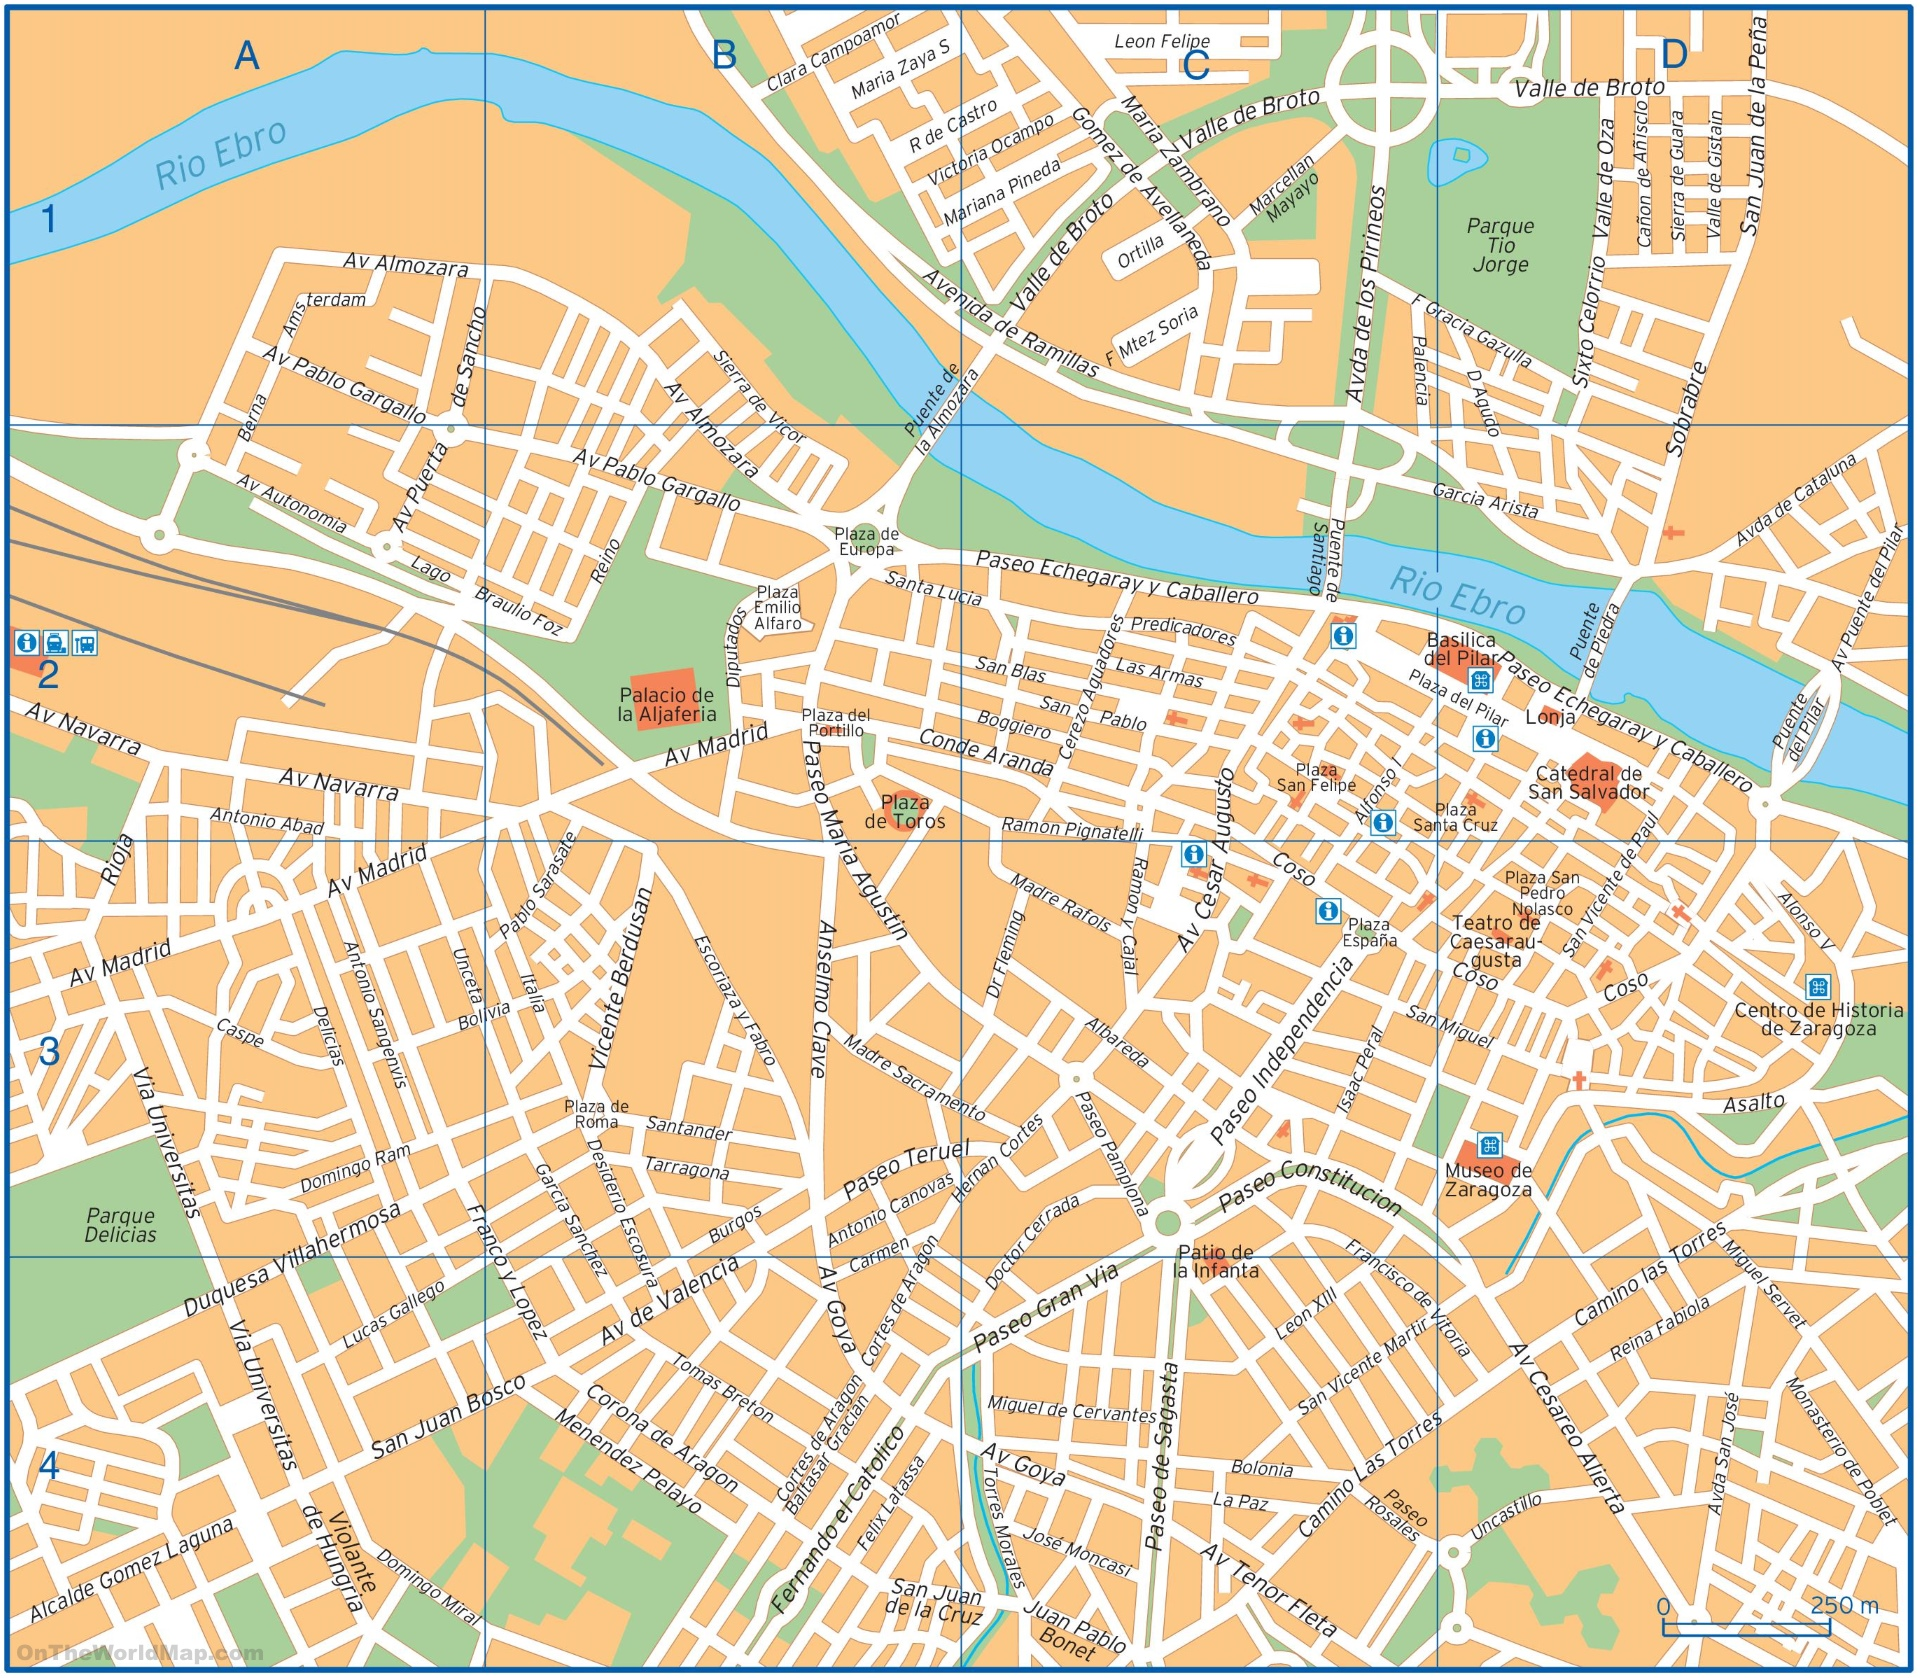 Zaragoza city center map